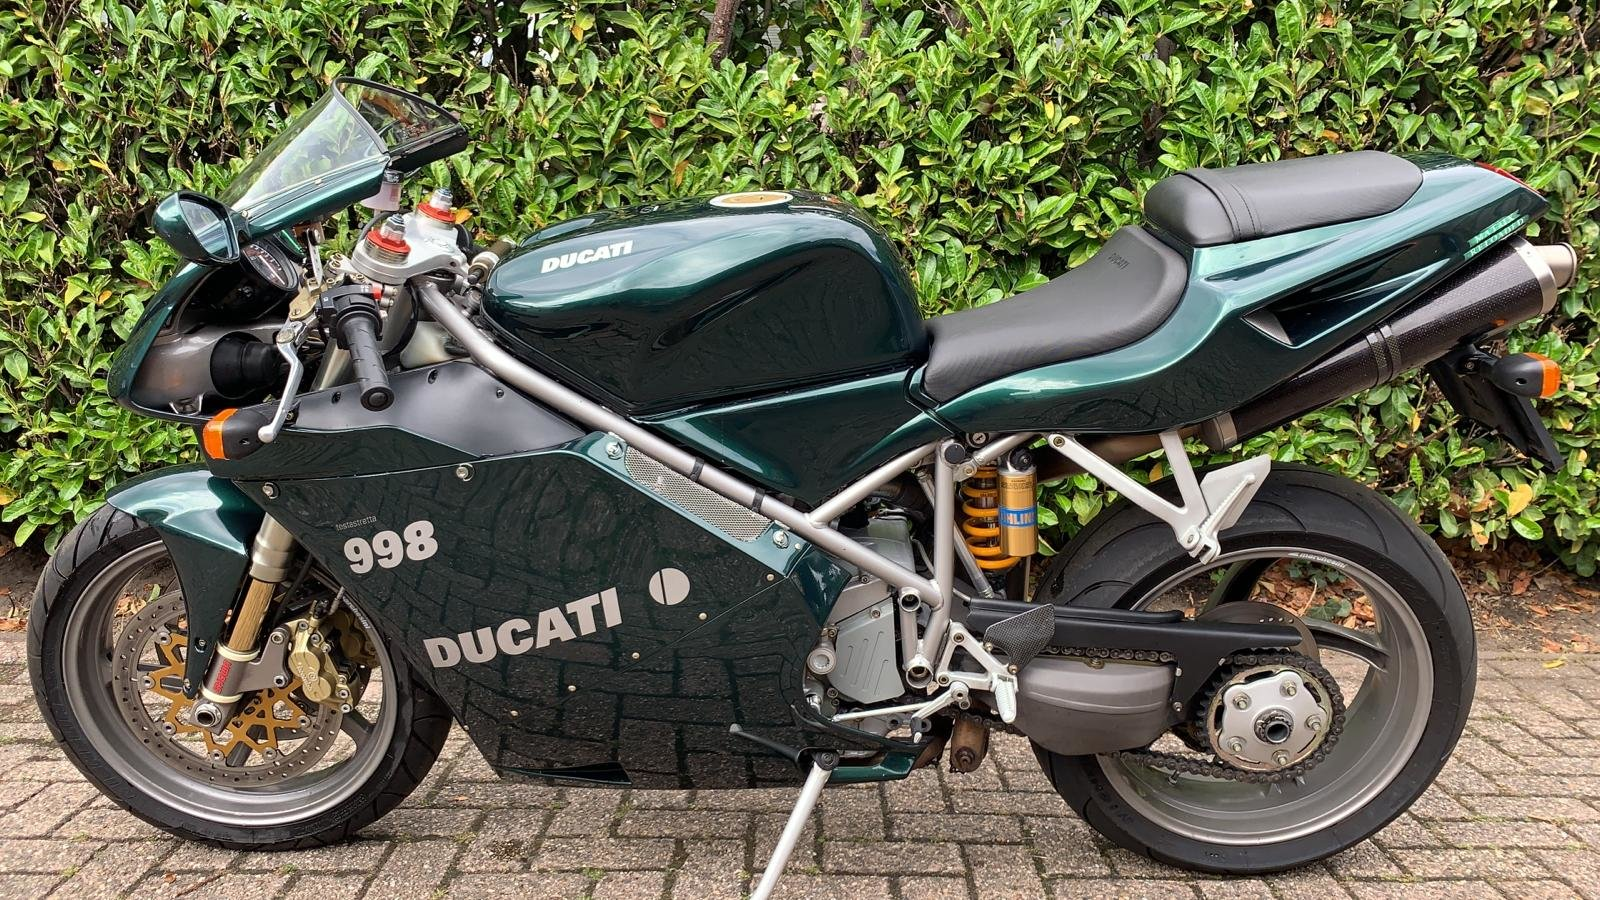 2004 Ducati 998 Matrix reloaded as new  For Sale (picture 5 of 6)